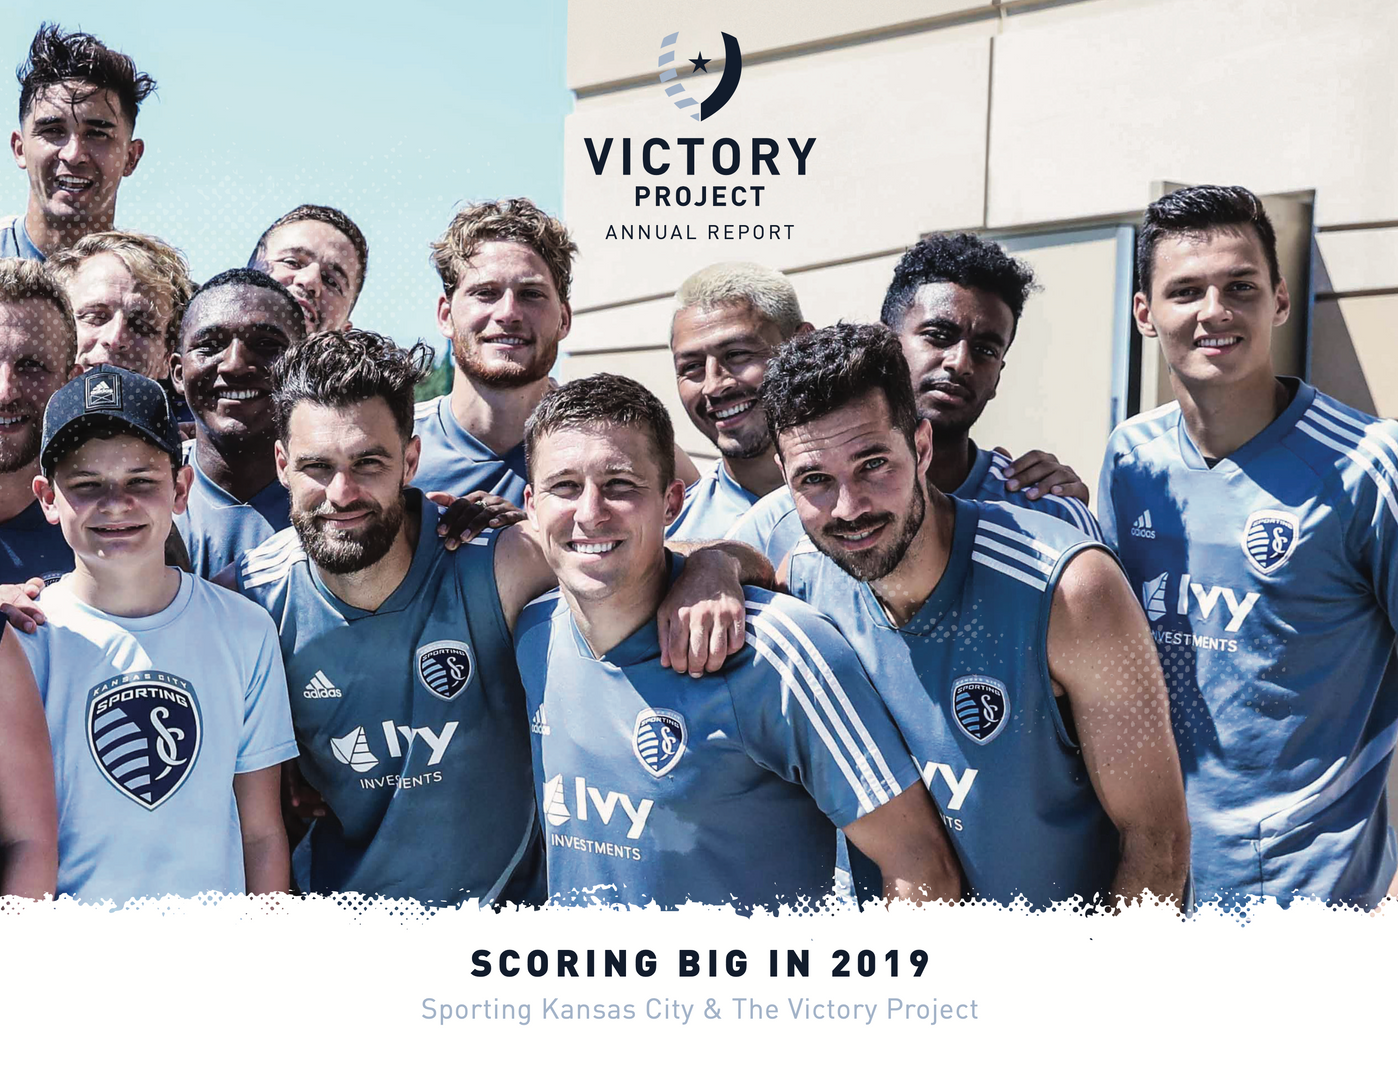 Sporting Kansas City Victory Project Annual Report